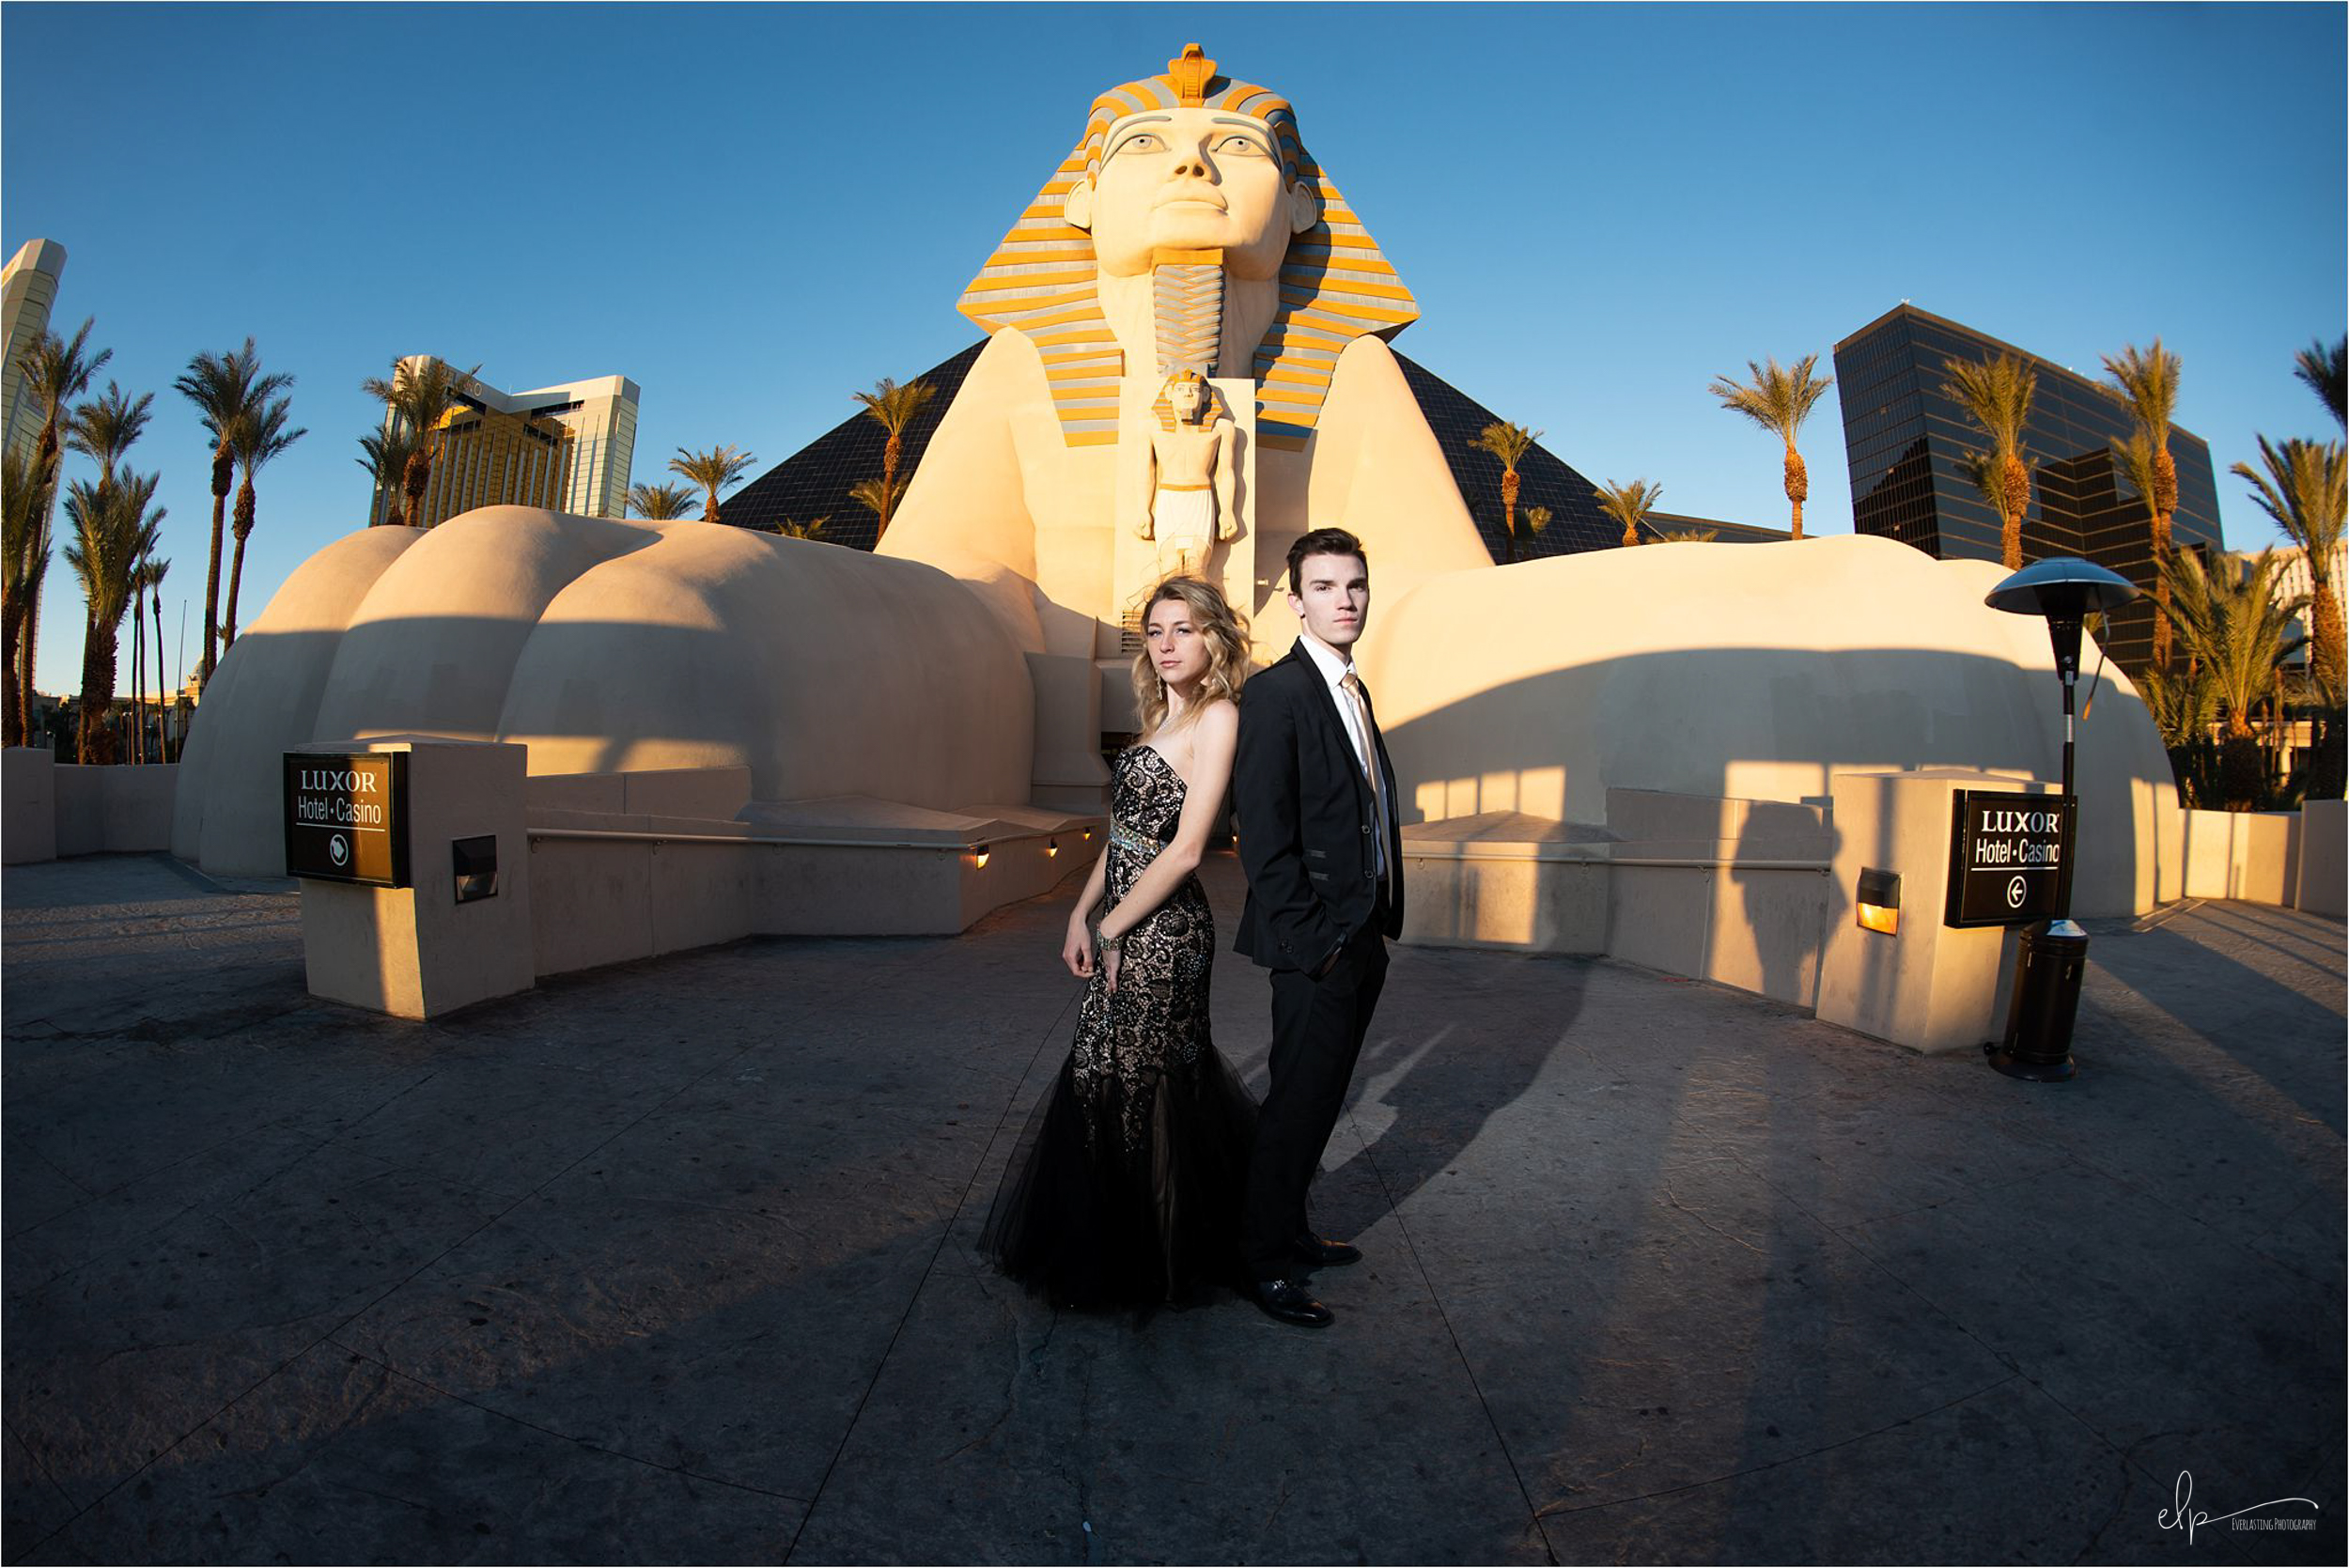 Engagement shoot at Las Vegas Luxor Hotel & Casino.